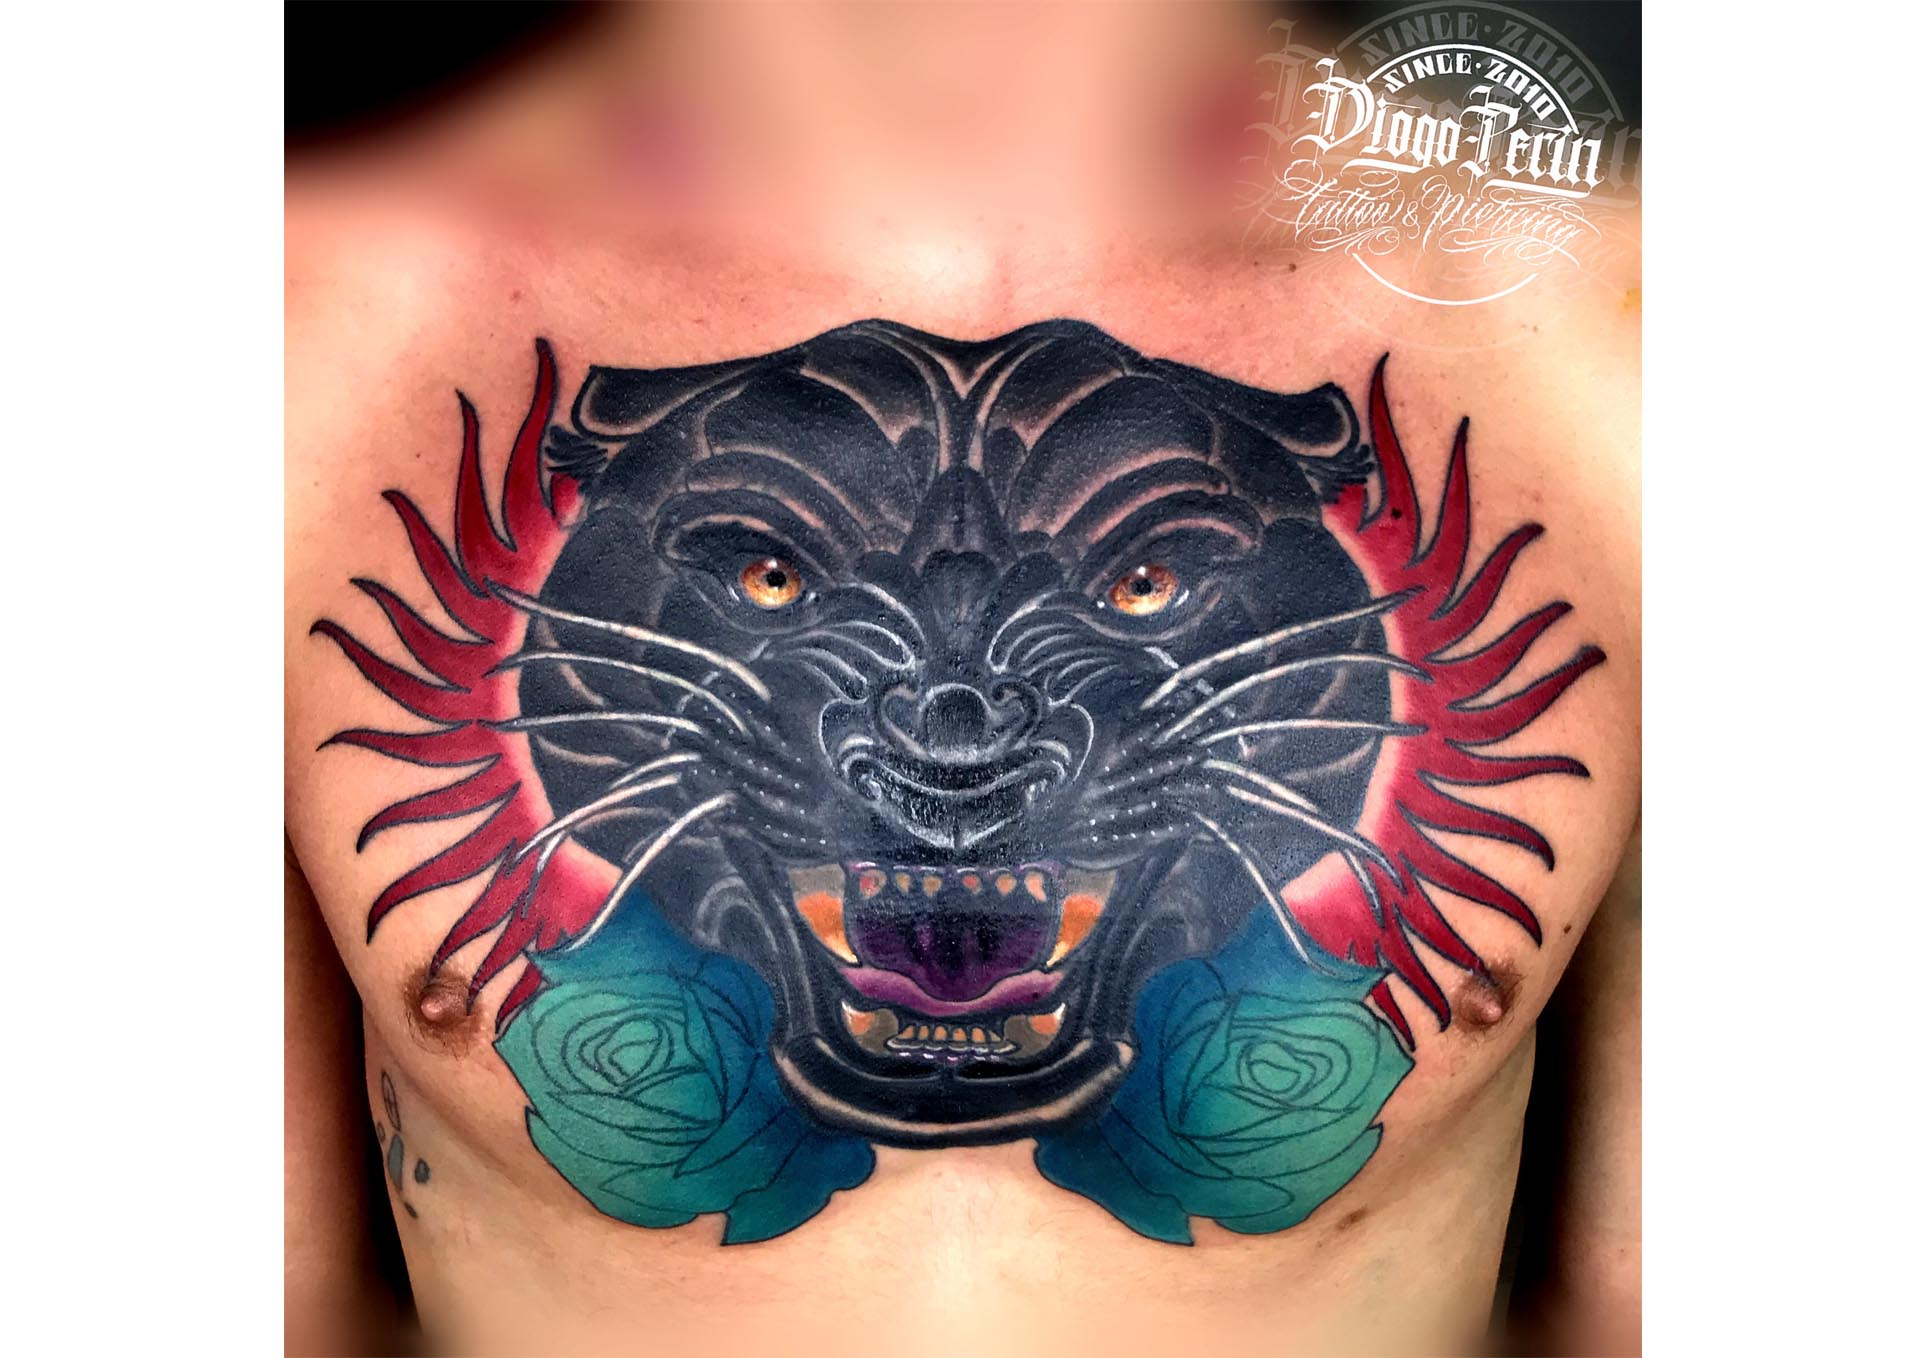 tattoo pantera cover up newschool neotradicional tattoo tatuaje alicante tapar tattoo